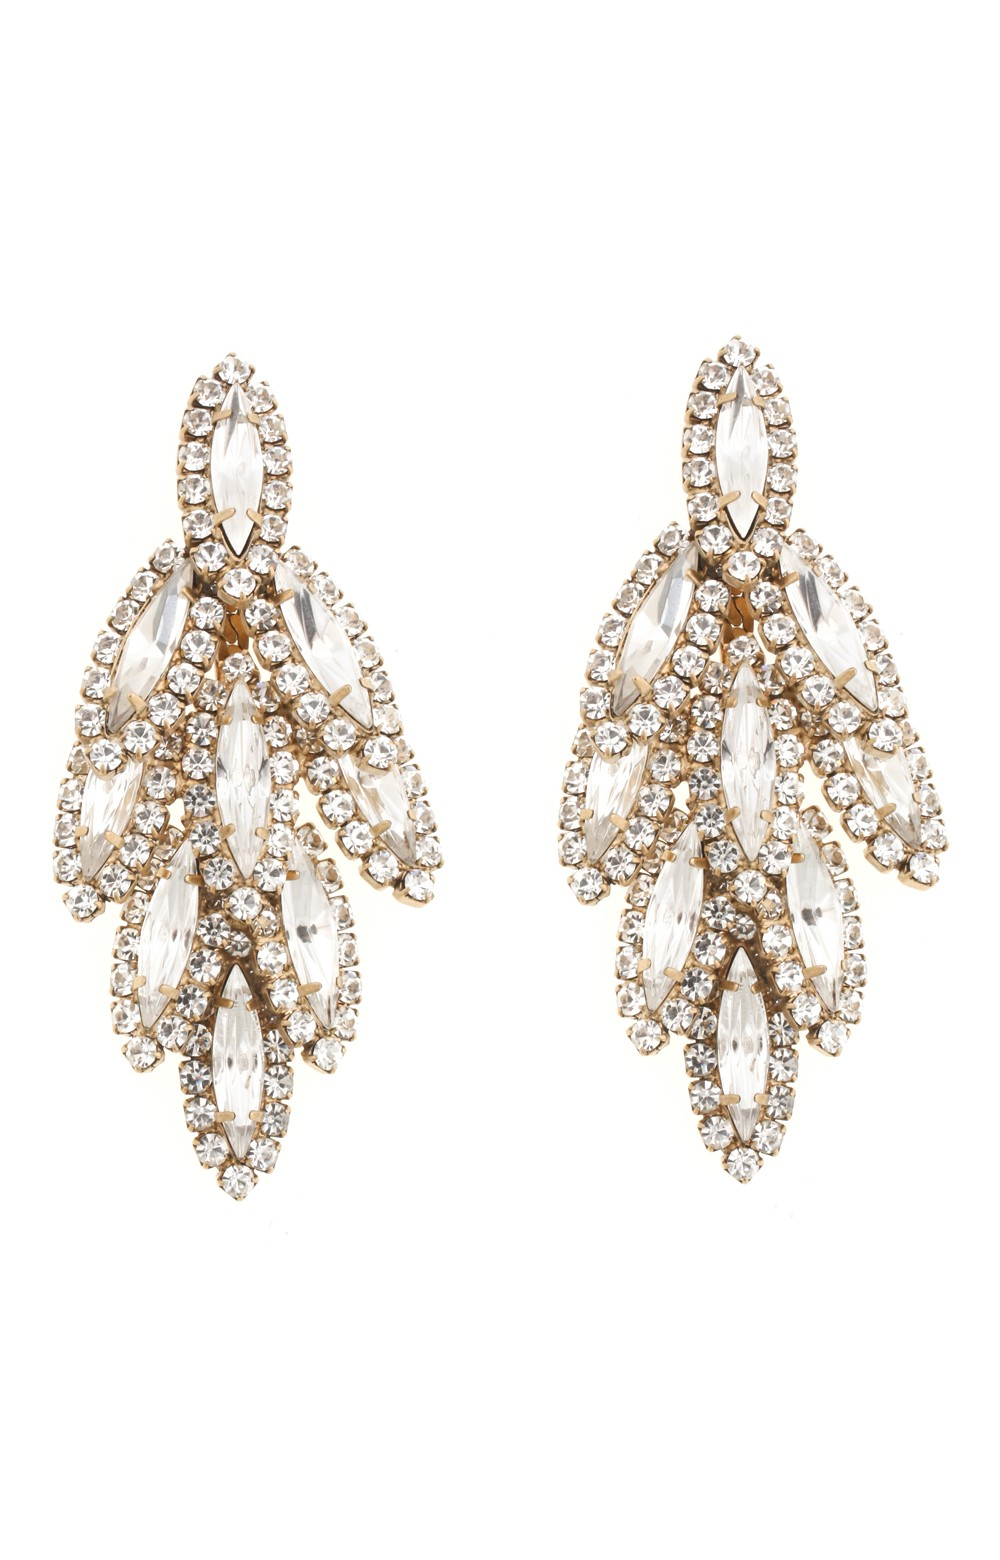 elizabeth-cole-crystal-crystal-navette-earrings-product-1-10681633-763360764.jpeg